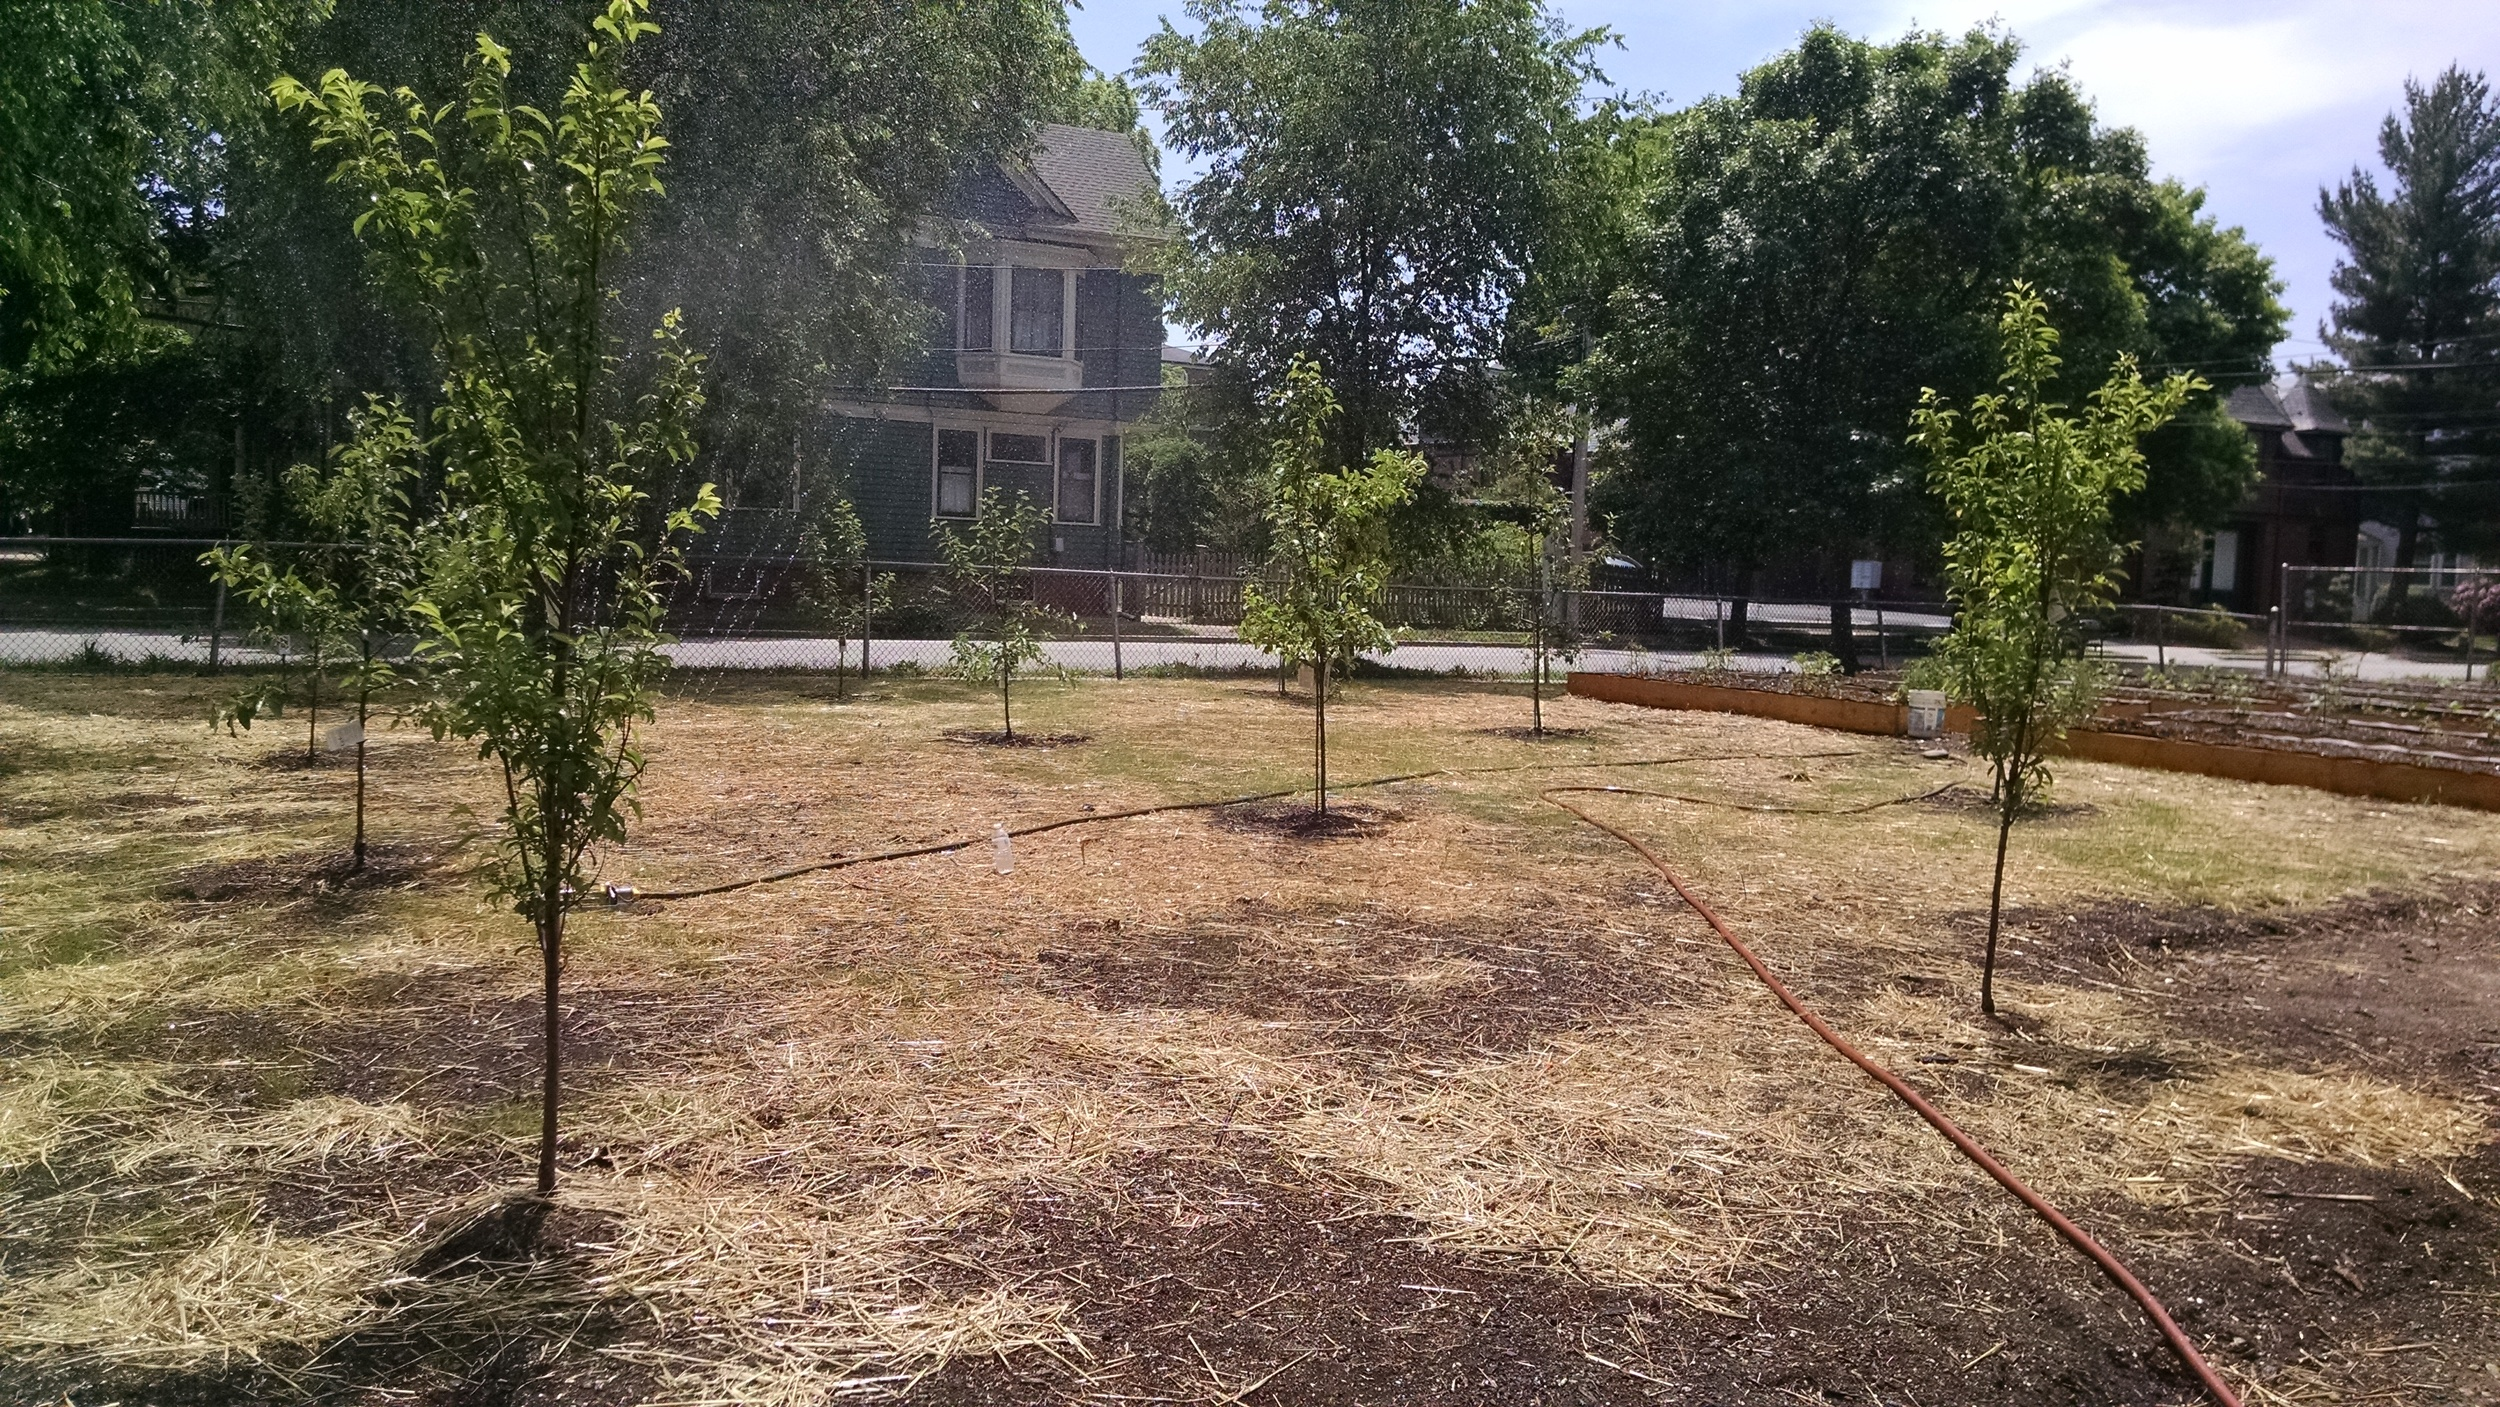 Plum and more apple trees planted on the south side of lot.